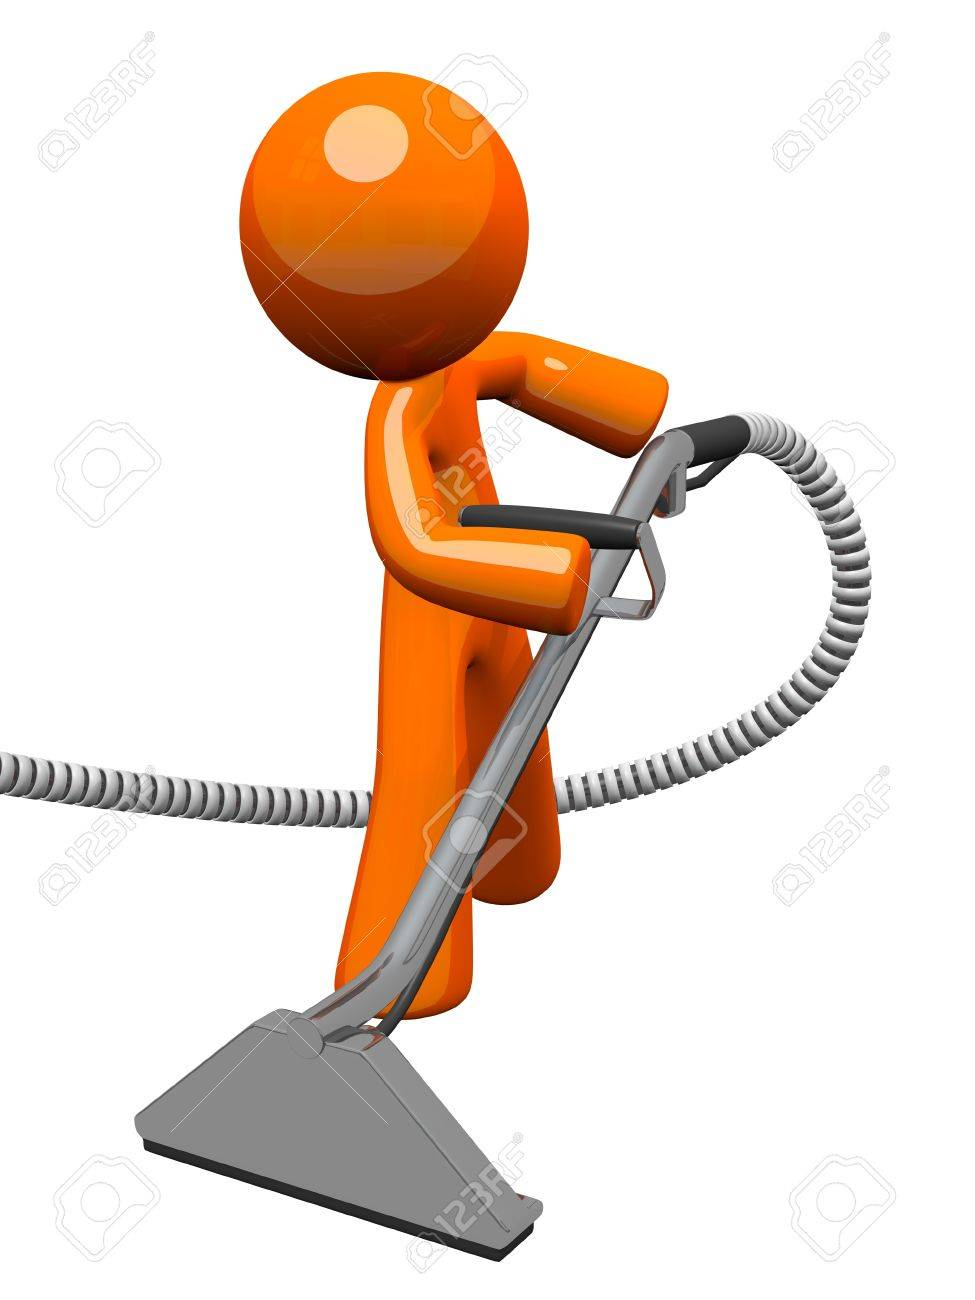 Orange man with steam cleaner carpet wand, extracting floor. Stock Photo - 12803674